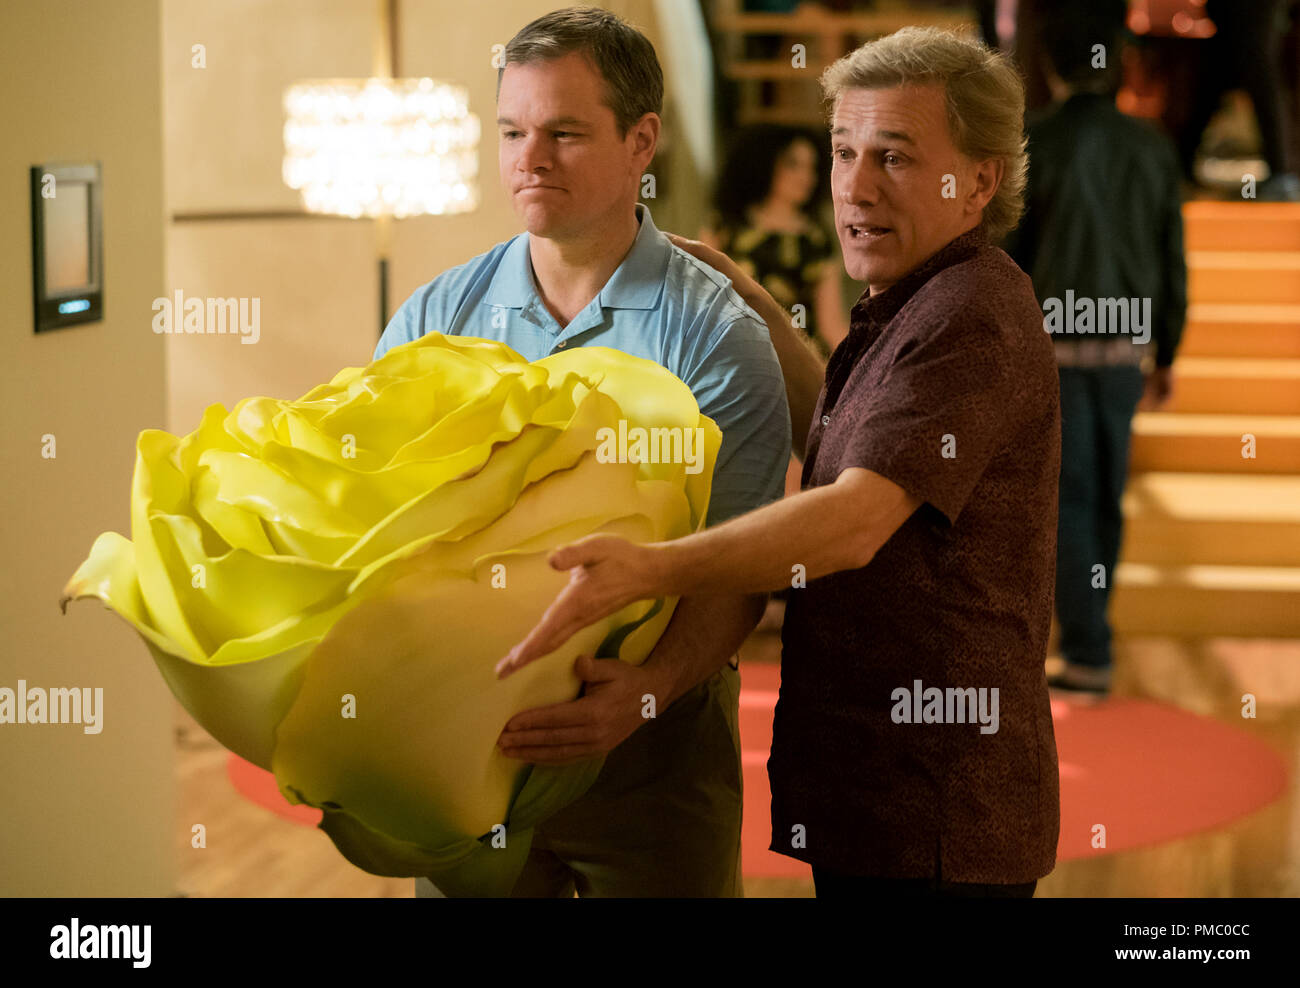 Matt Damon plays Paul and Christoph Waltz plays Dusan in Downsizing from Paramount Pictures. (2017) - Stock Image